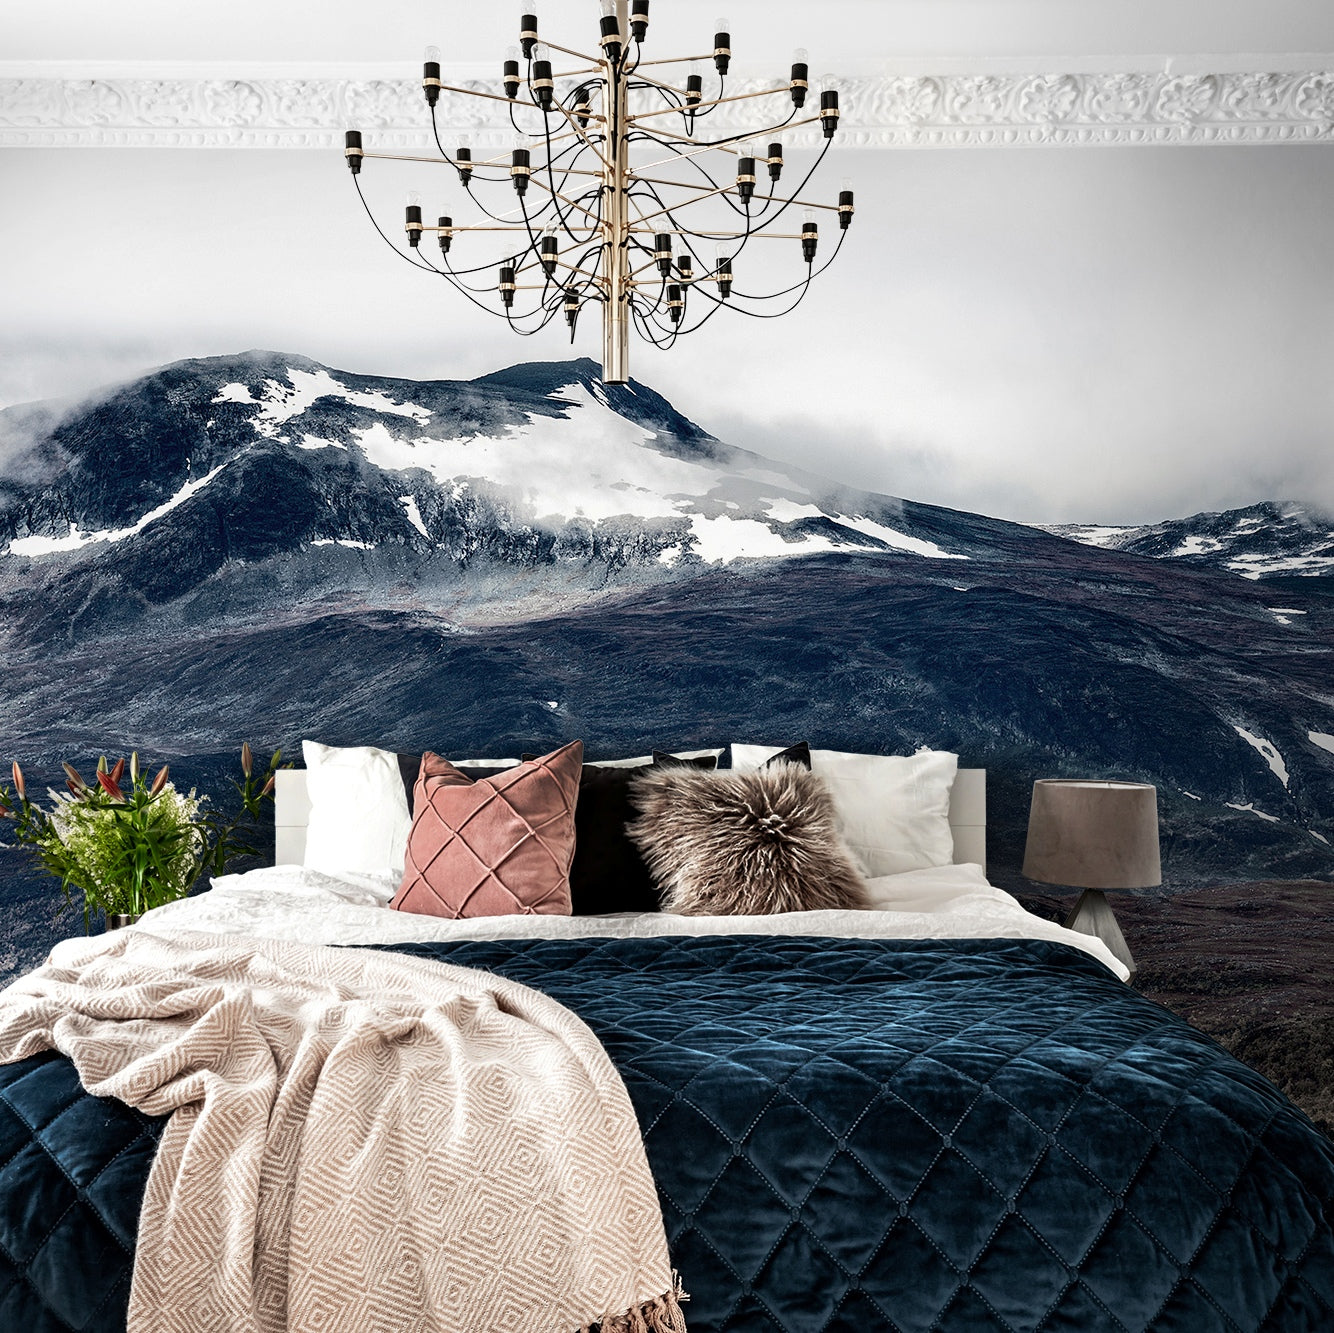 The Wild North Mountains Mural Wallpaper (SqM)